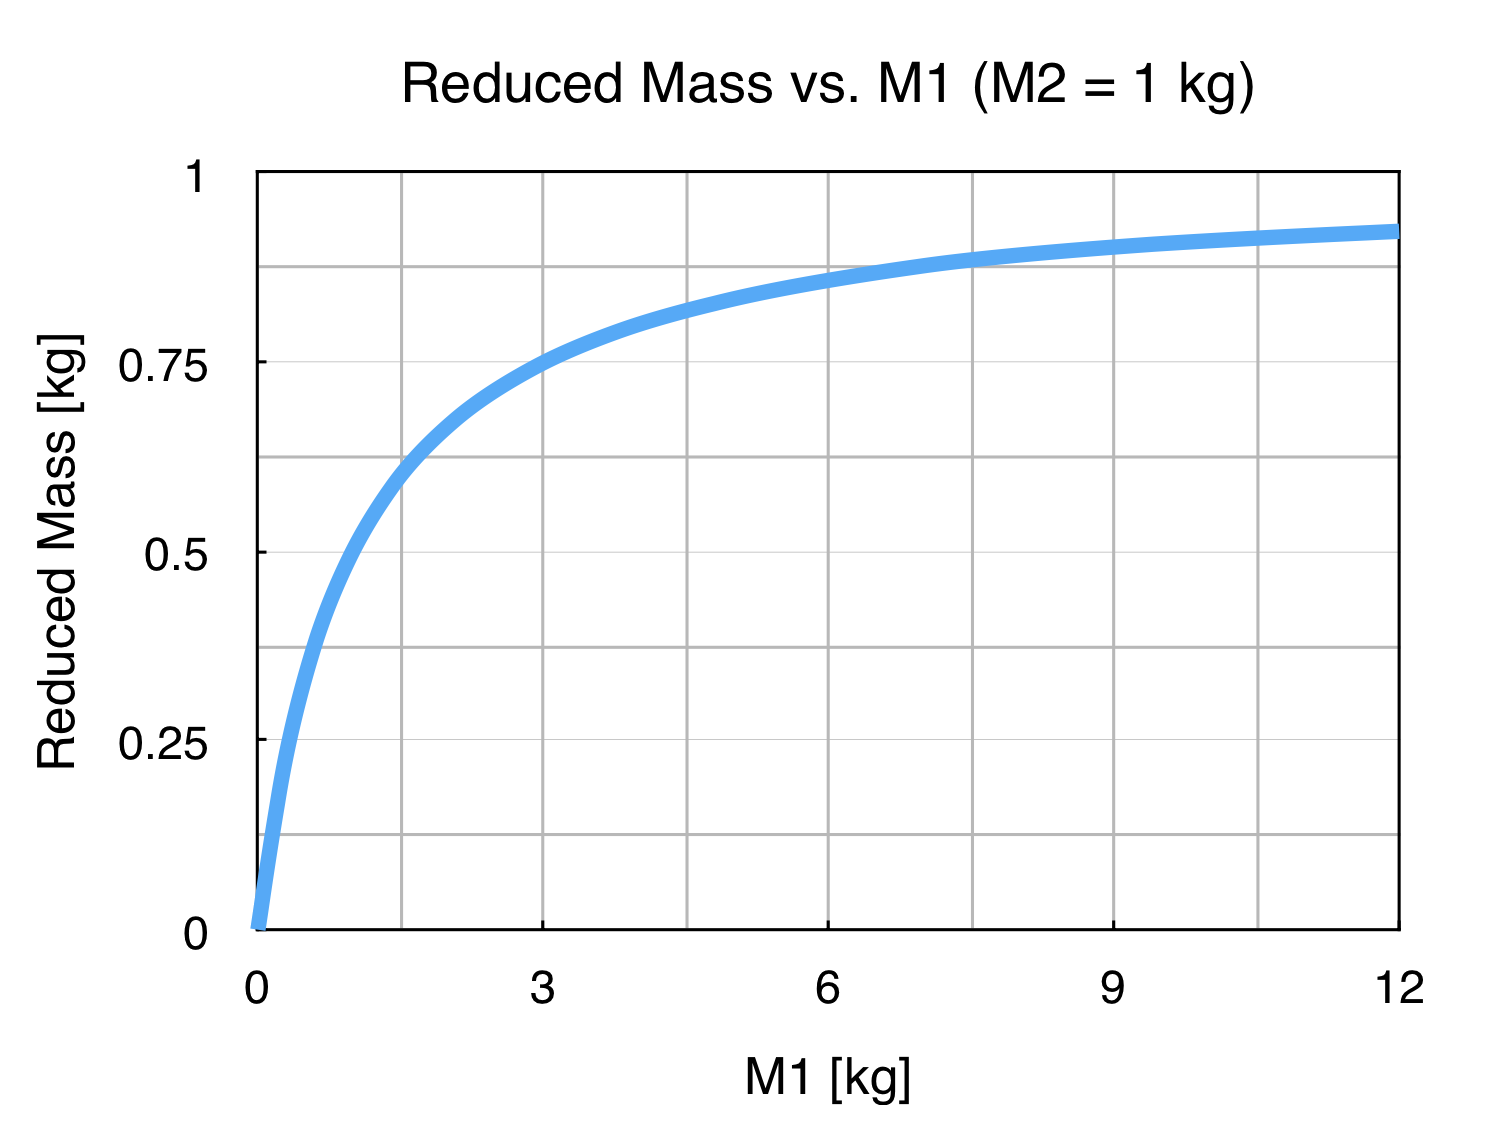 Reduced Mass